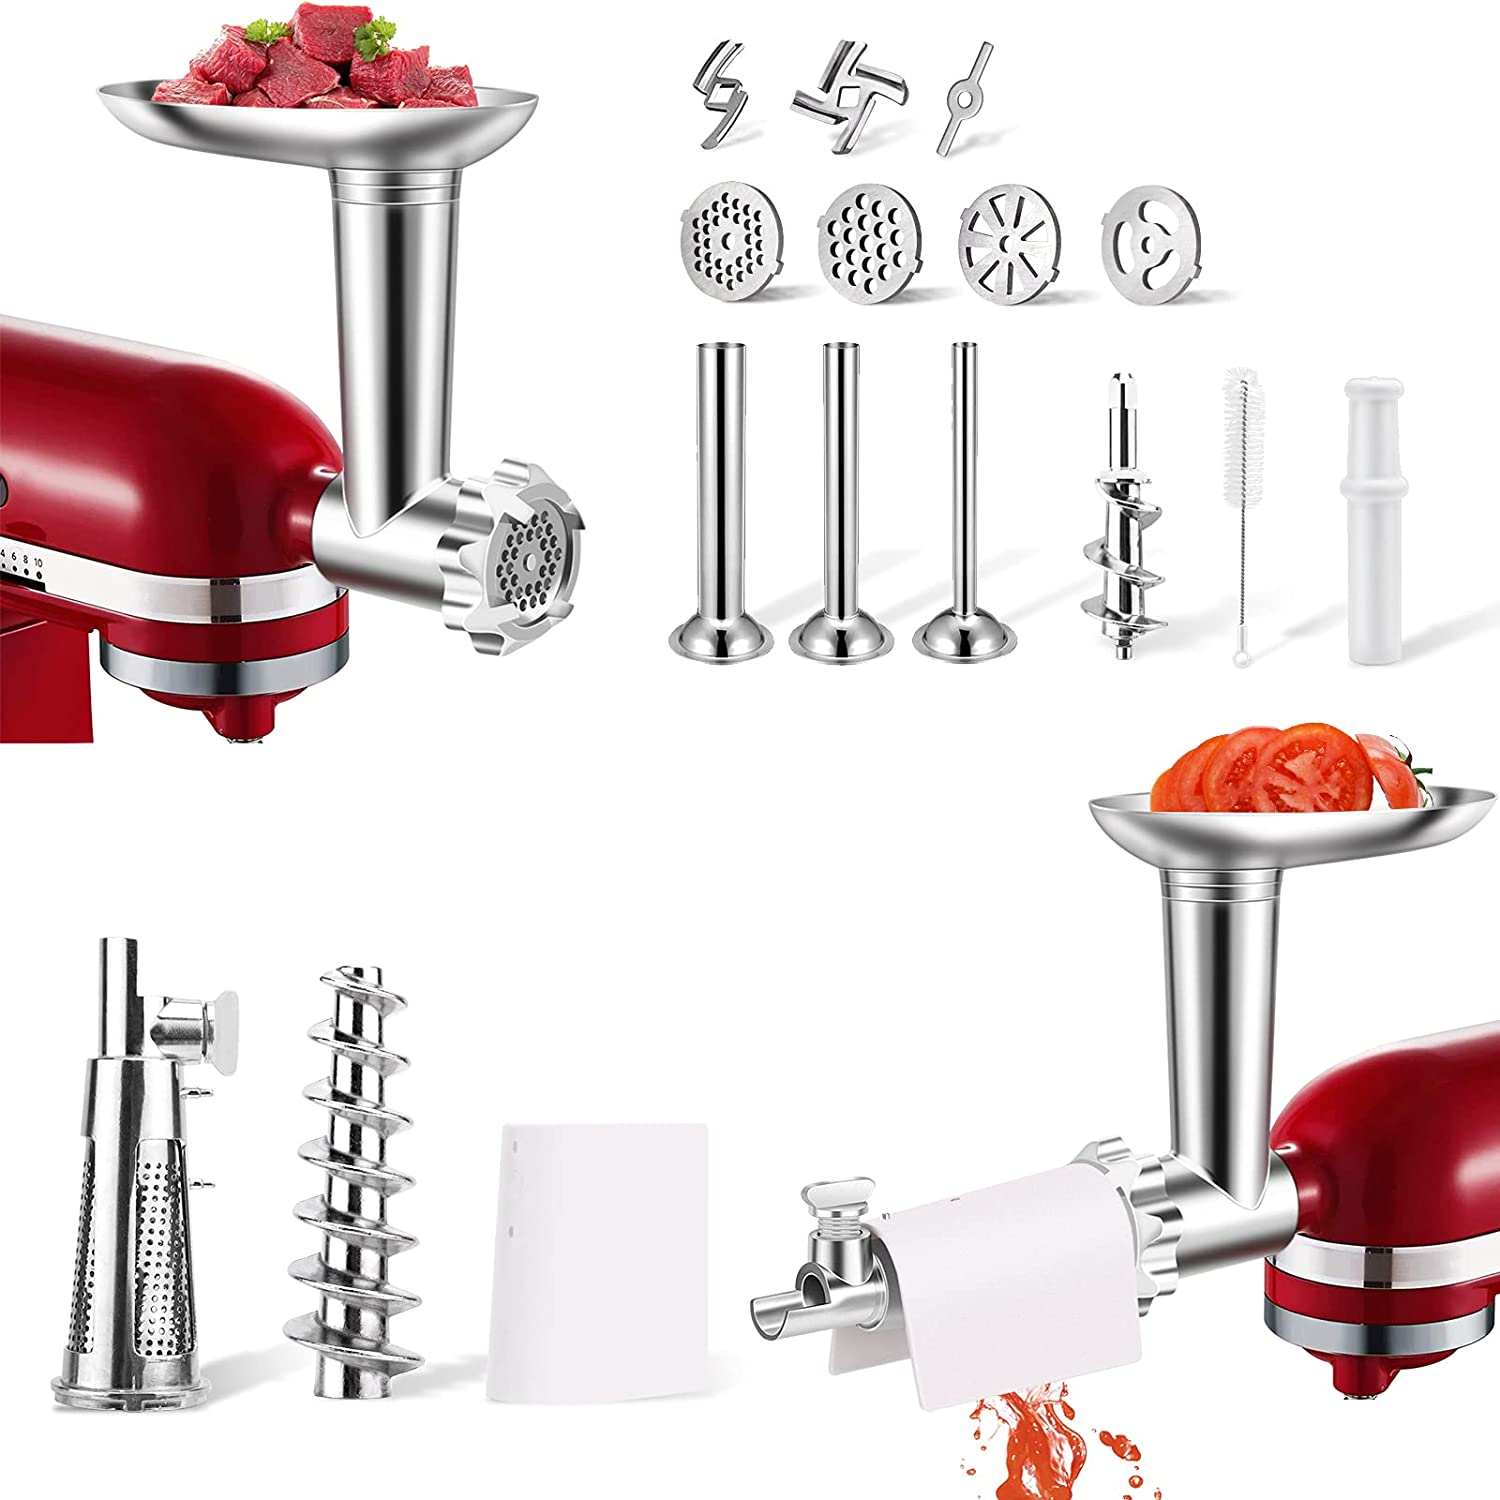 Fruit Vegetable Fort Worth Mall Strainer Discount is also underway Set with for Attachment Grinder Food